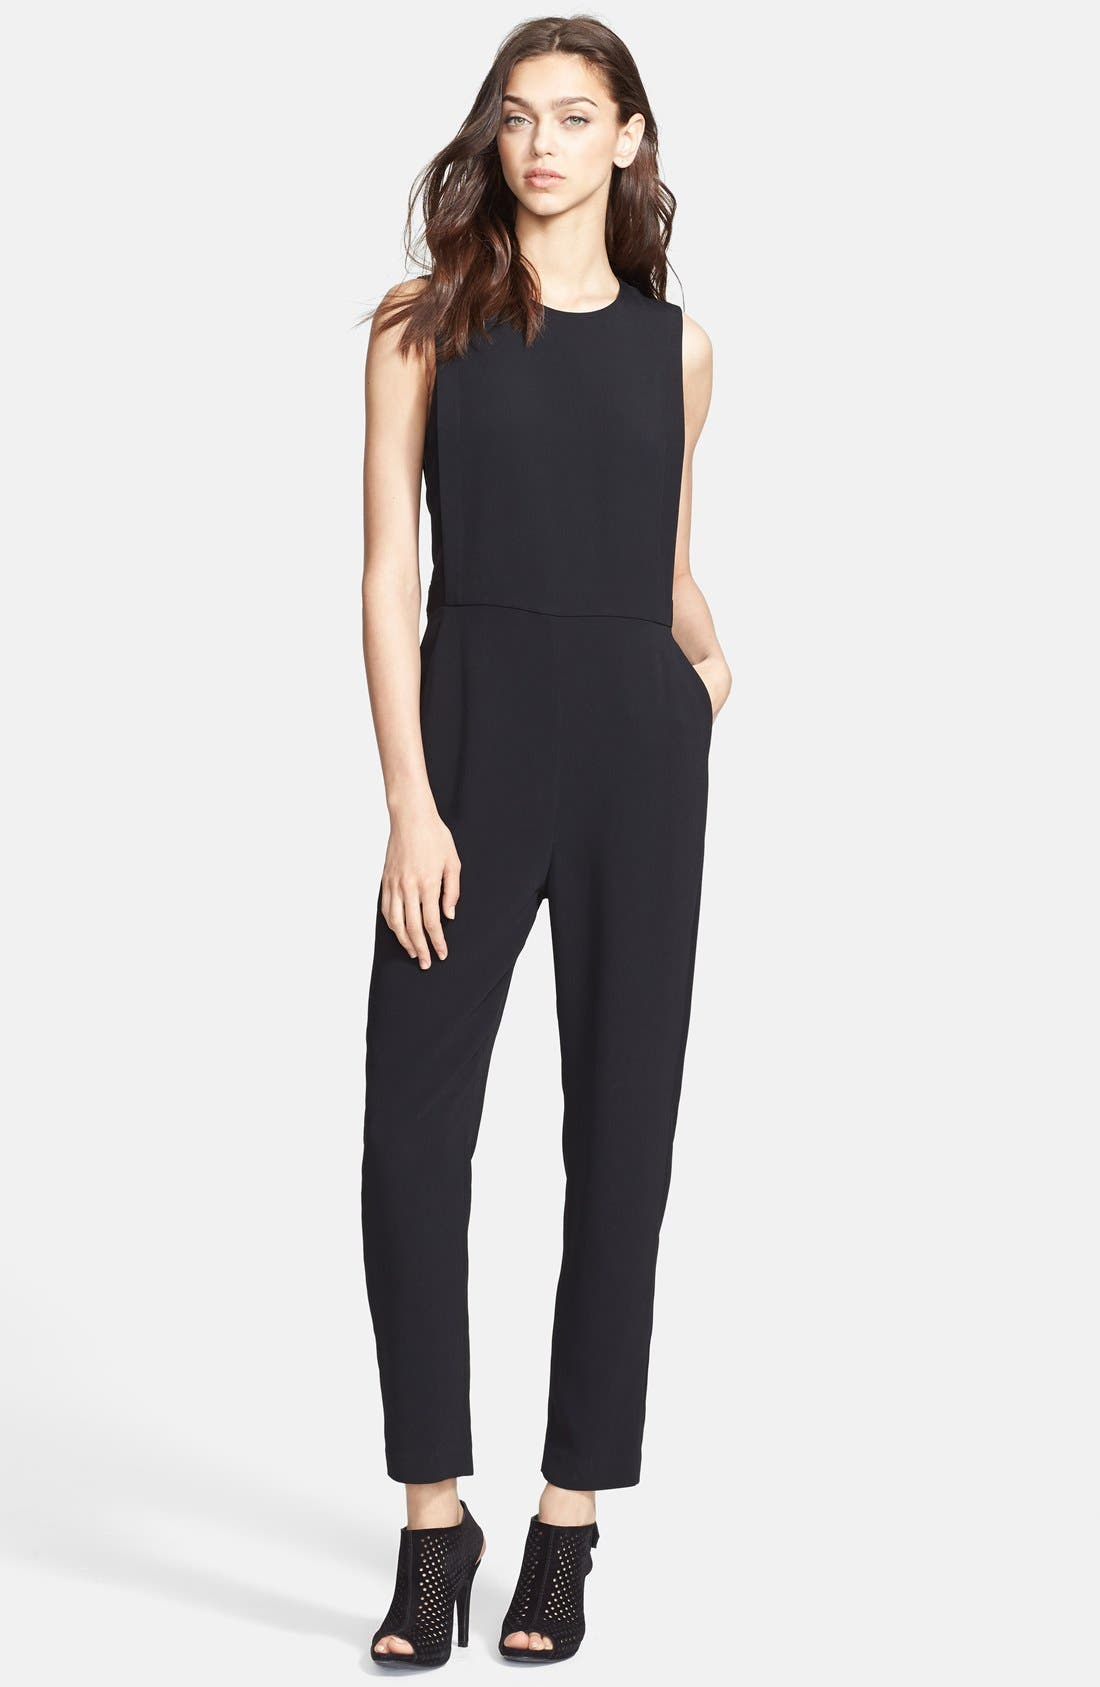 Alternate Image 1 Selected - Theory 'Remaline' Stretch Crepe Jumpsuit